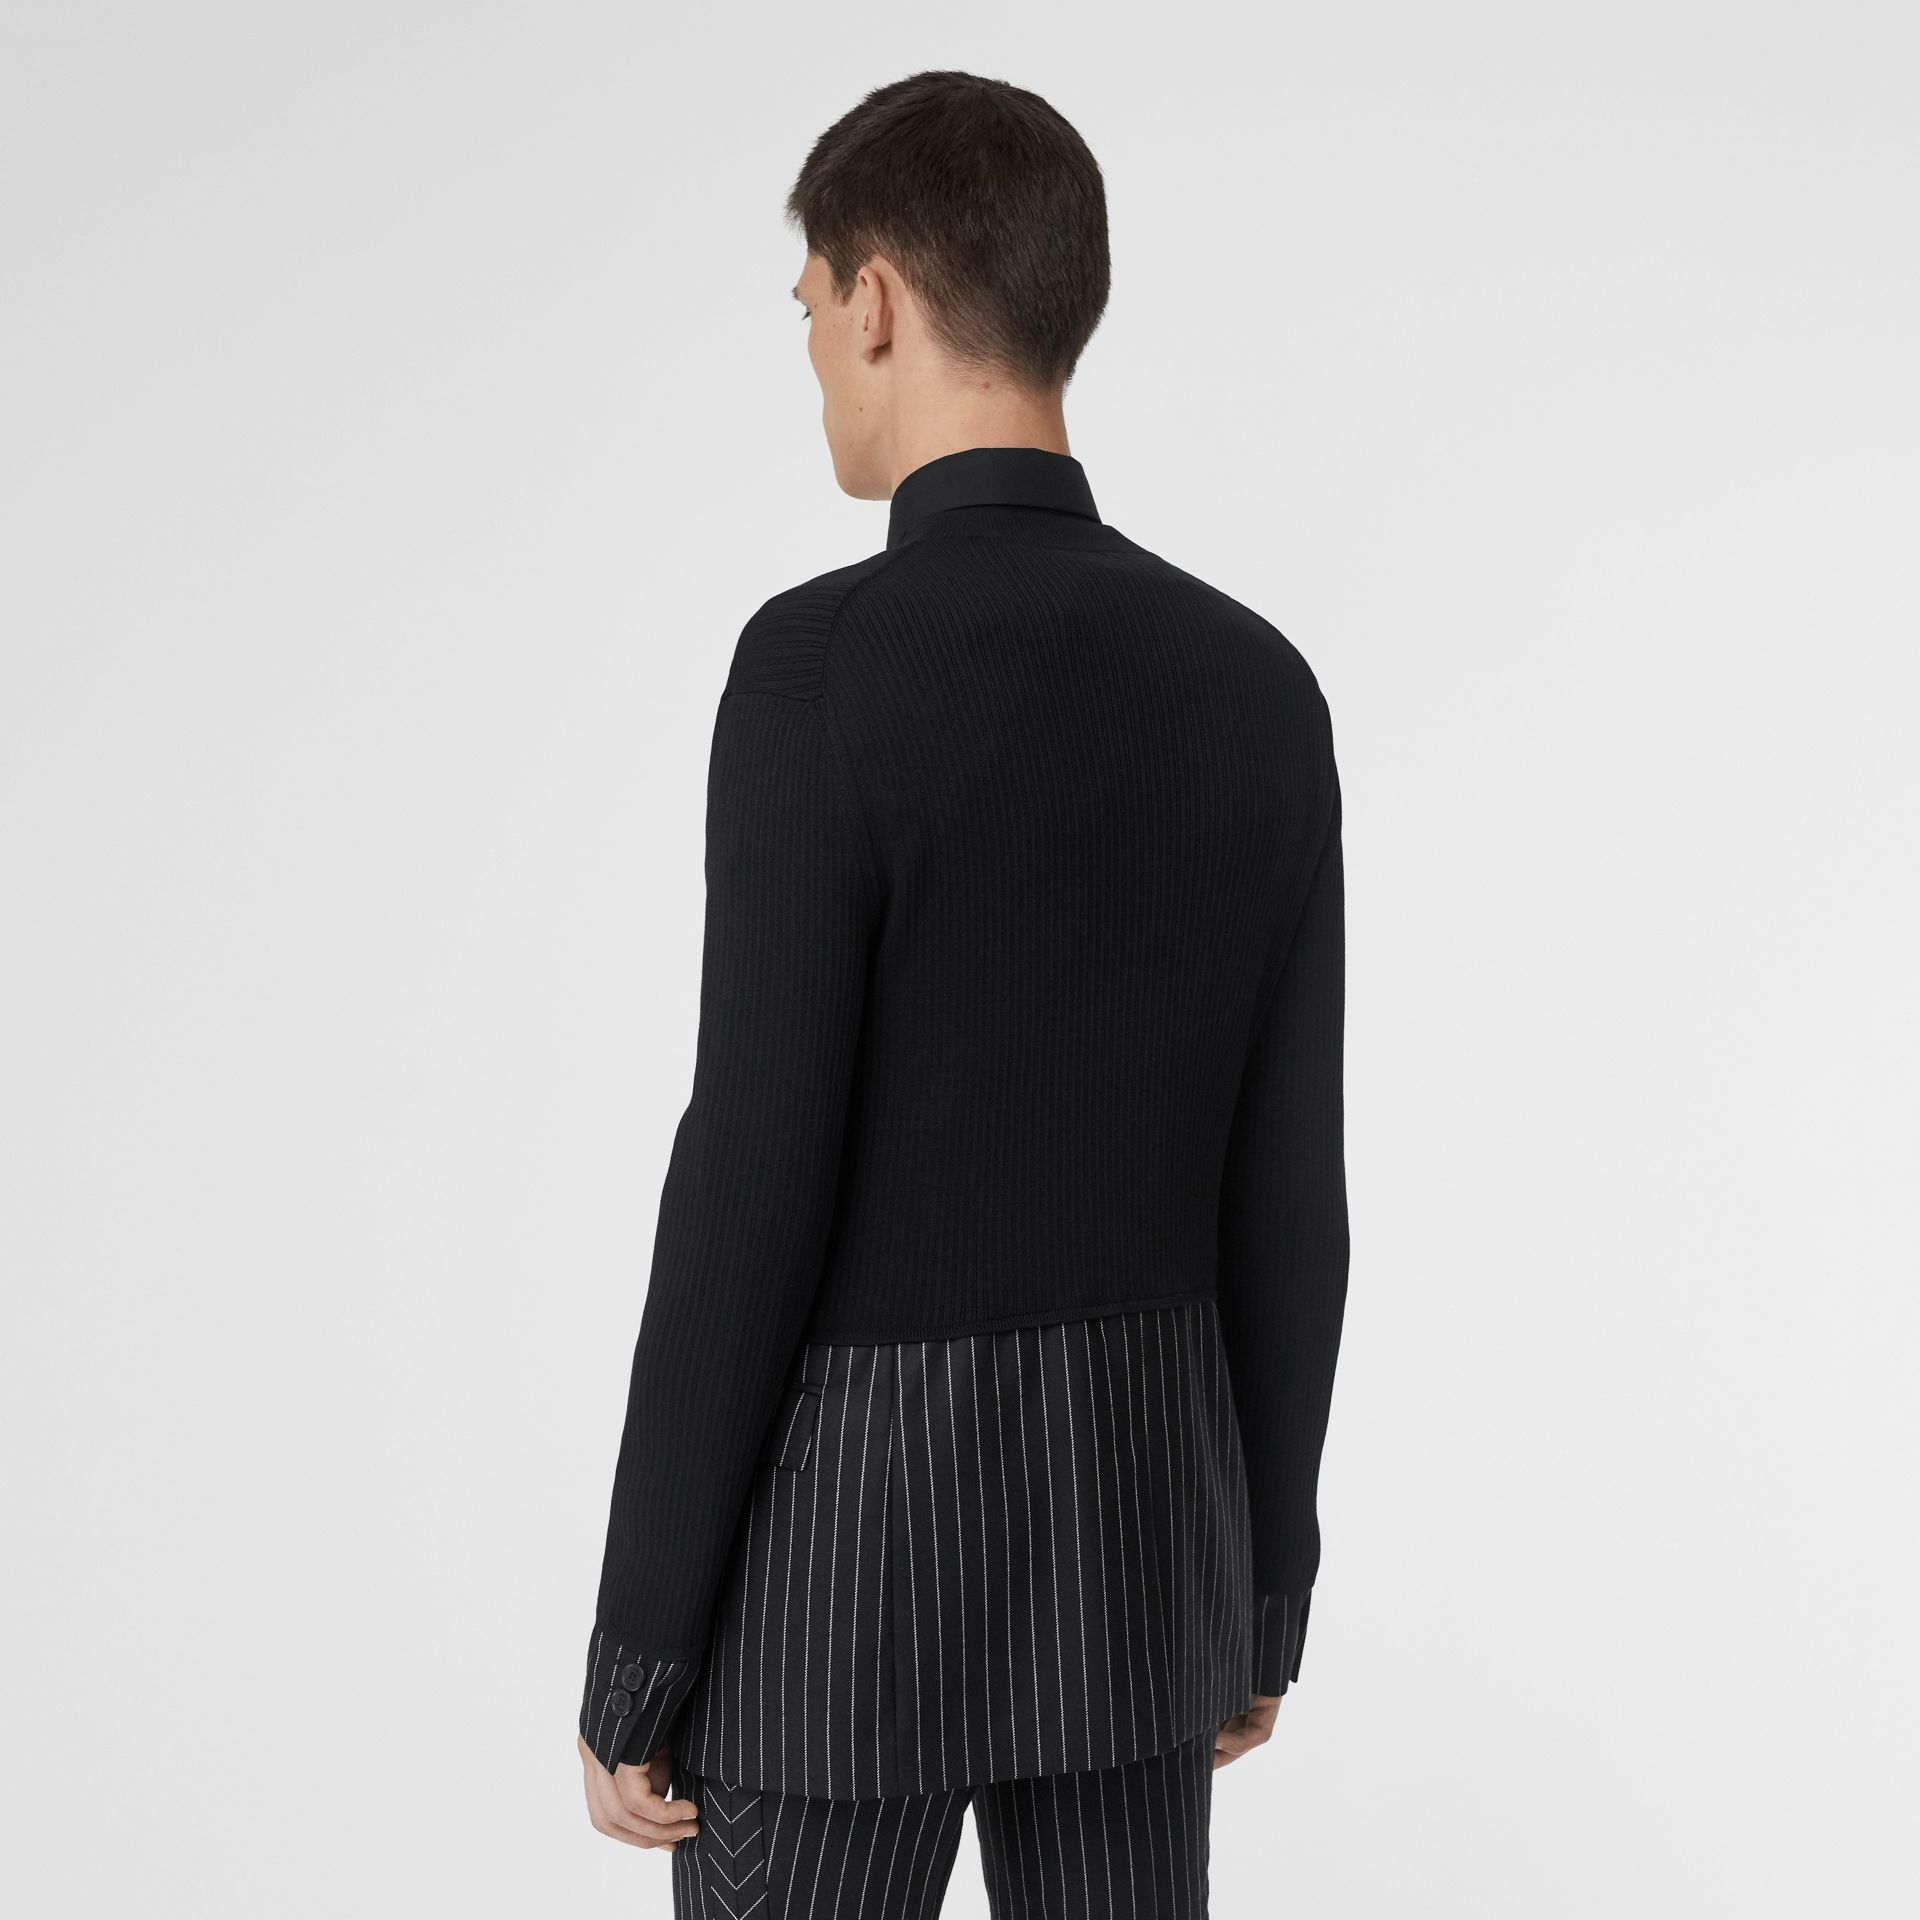 Tailored Panel Rib Knit Silk Blend Sweater in Black | Burberry - gallery image 2